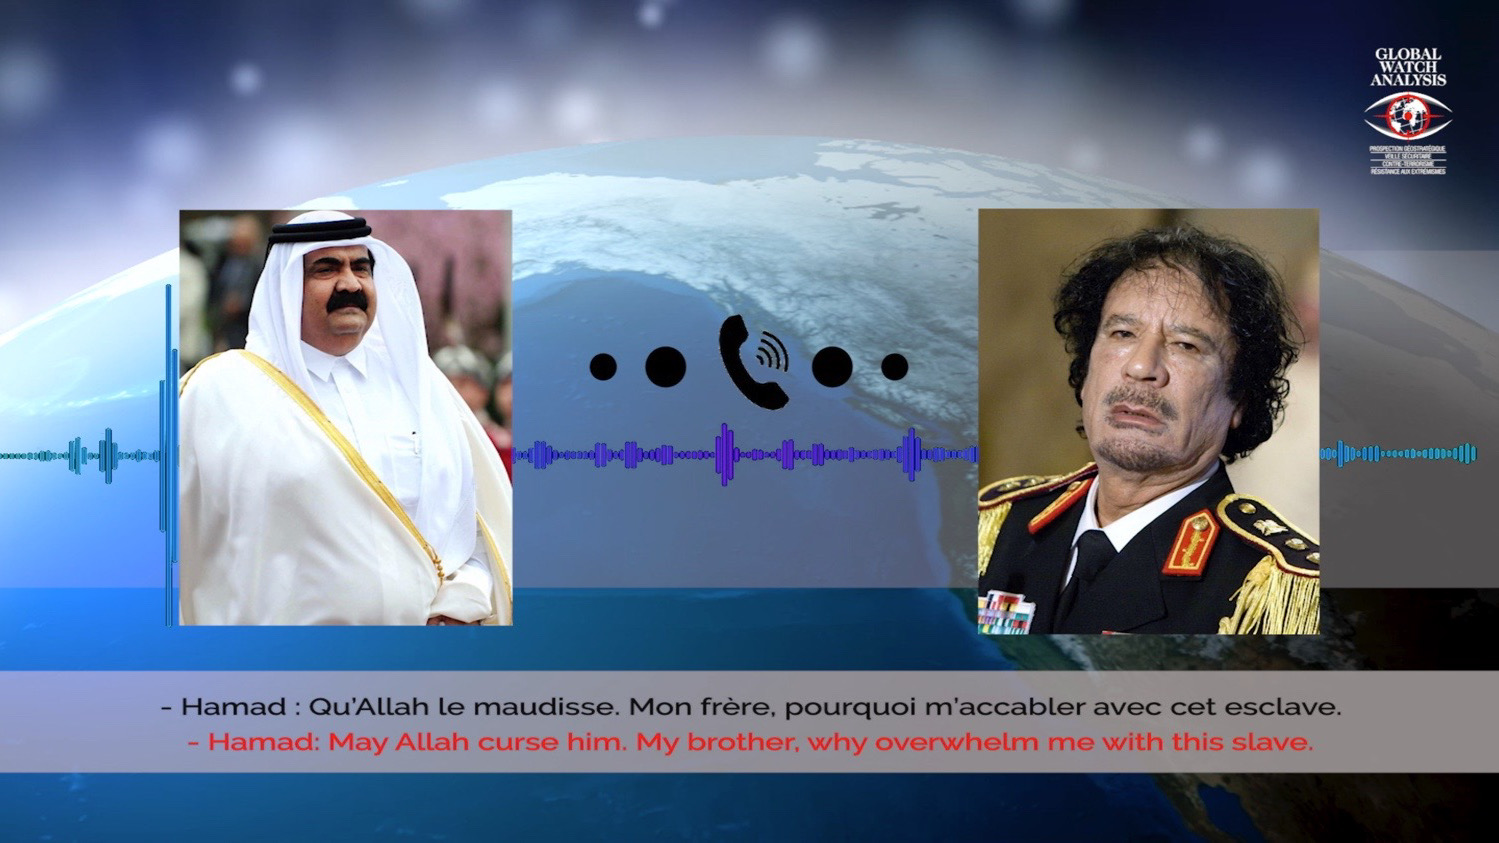 When the Prince of Qatar called Obama a slave and recognized the Muslim Brotherhood's stranglehold on al-Jazeera!